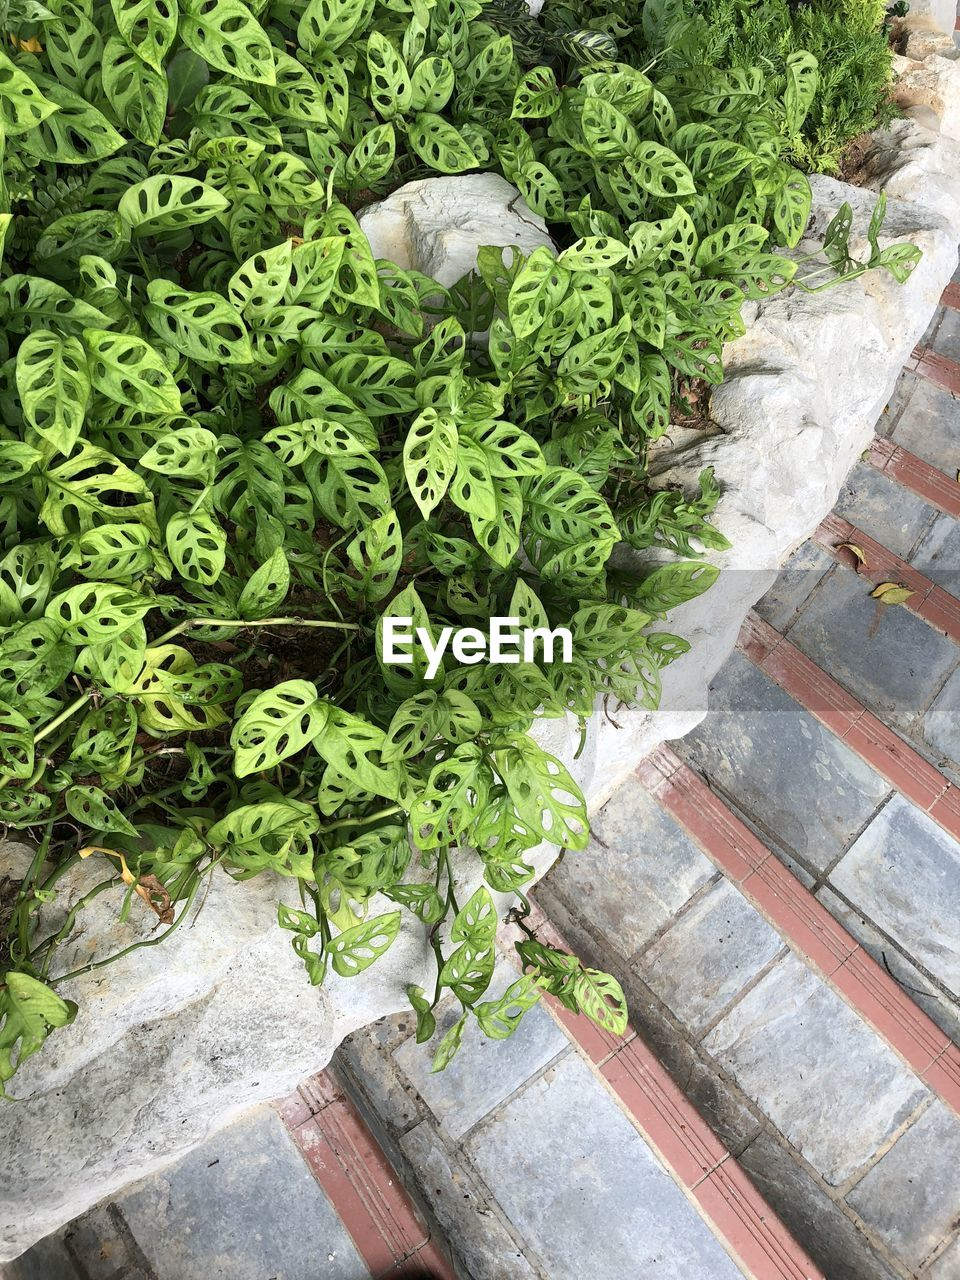 green color, high angle view, day, no people, freshness, growth, wellbeing, food and drink, healthy eating, vegetable, plant, food, for sale, outdoors, market, nature, raw food, plant part, retail, leaf, vegetarian food, coriander